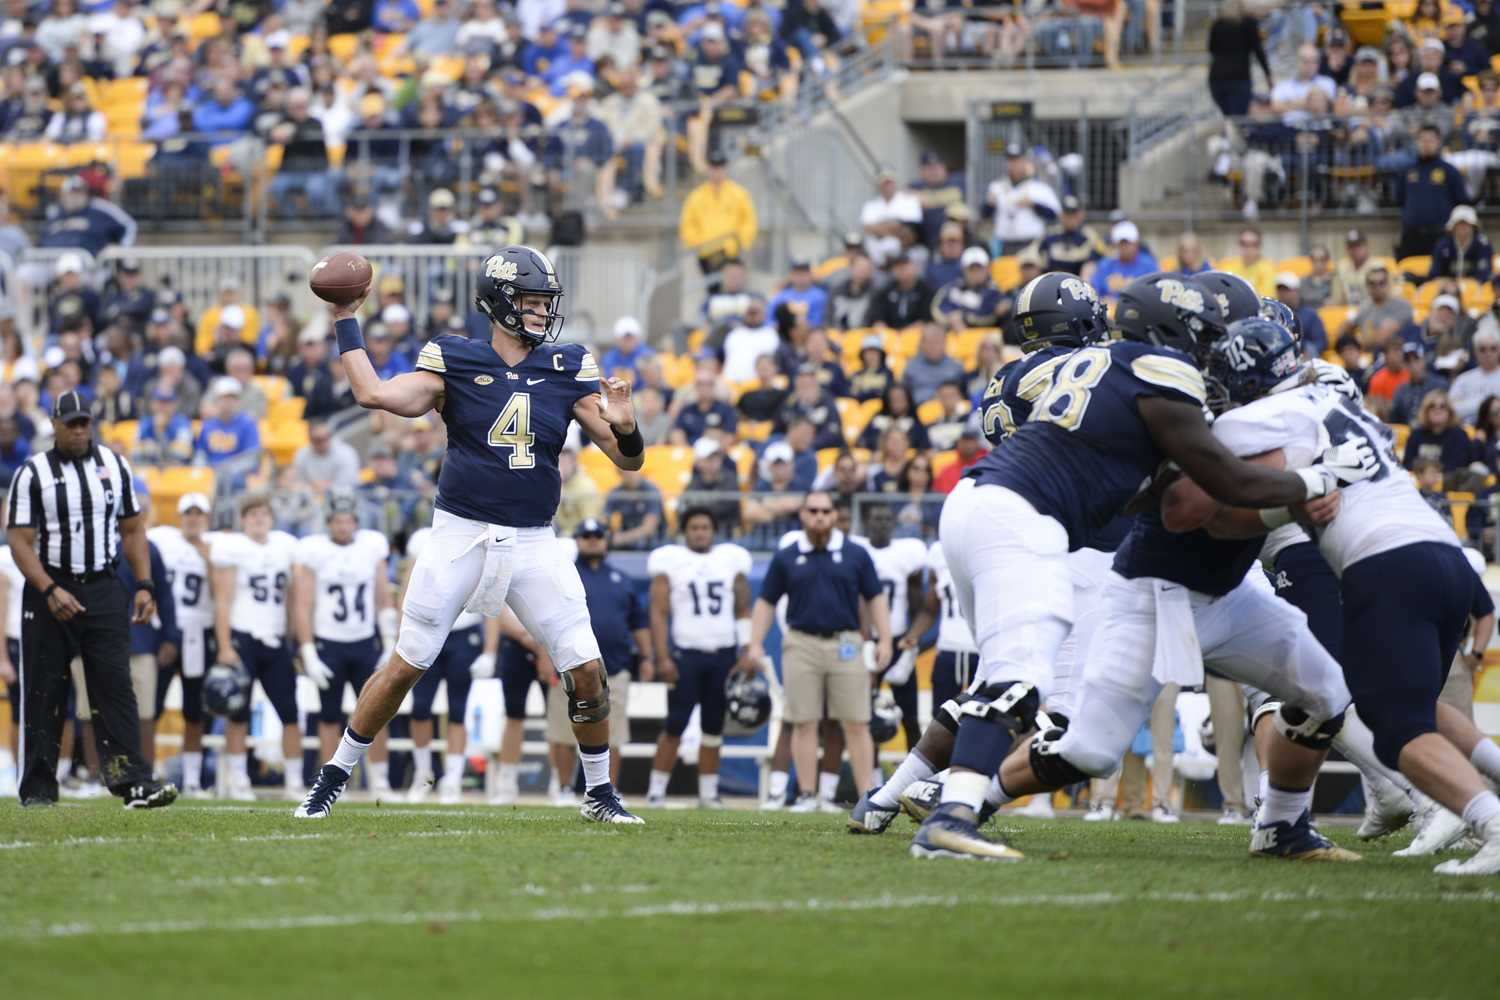 Pitt Panthers beat Rice Owls at Heinz Field Saturday afternoon with a final score of 42-10. (Photo by Thomas Yang | Staff Photographer)